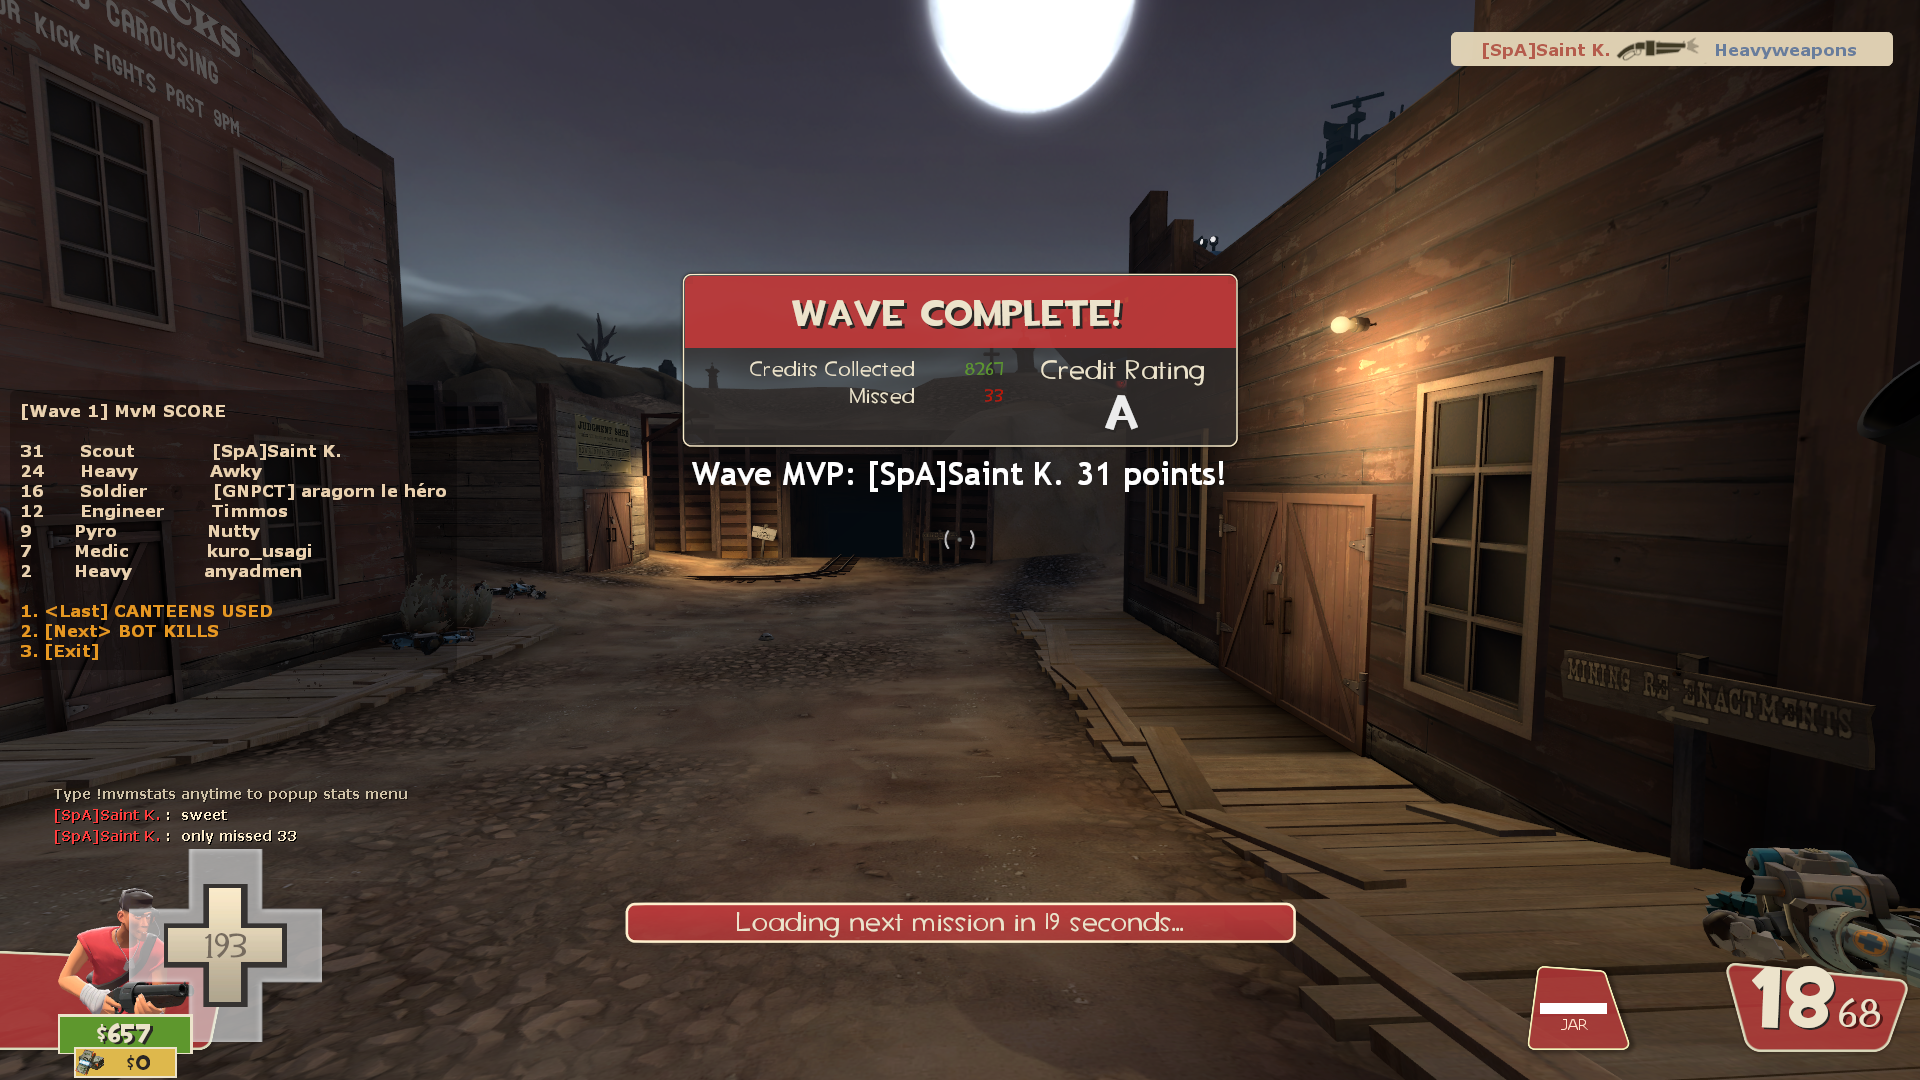 mvm_ghost_town0000_converted.png